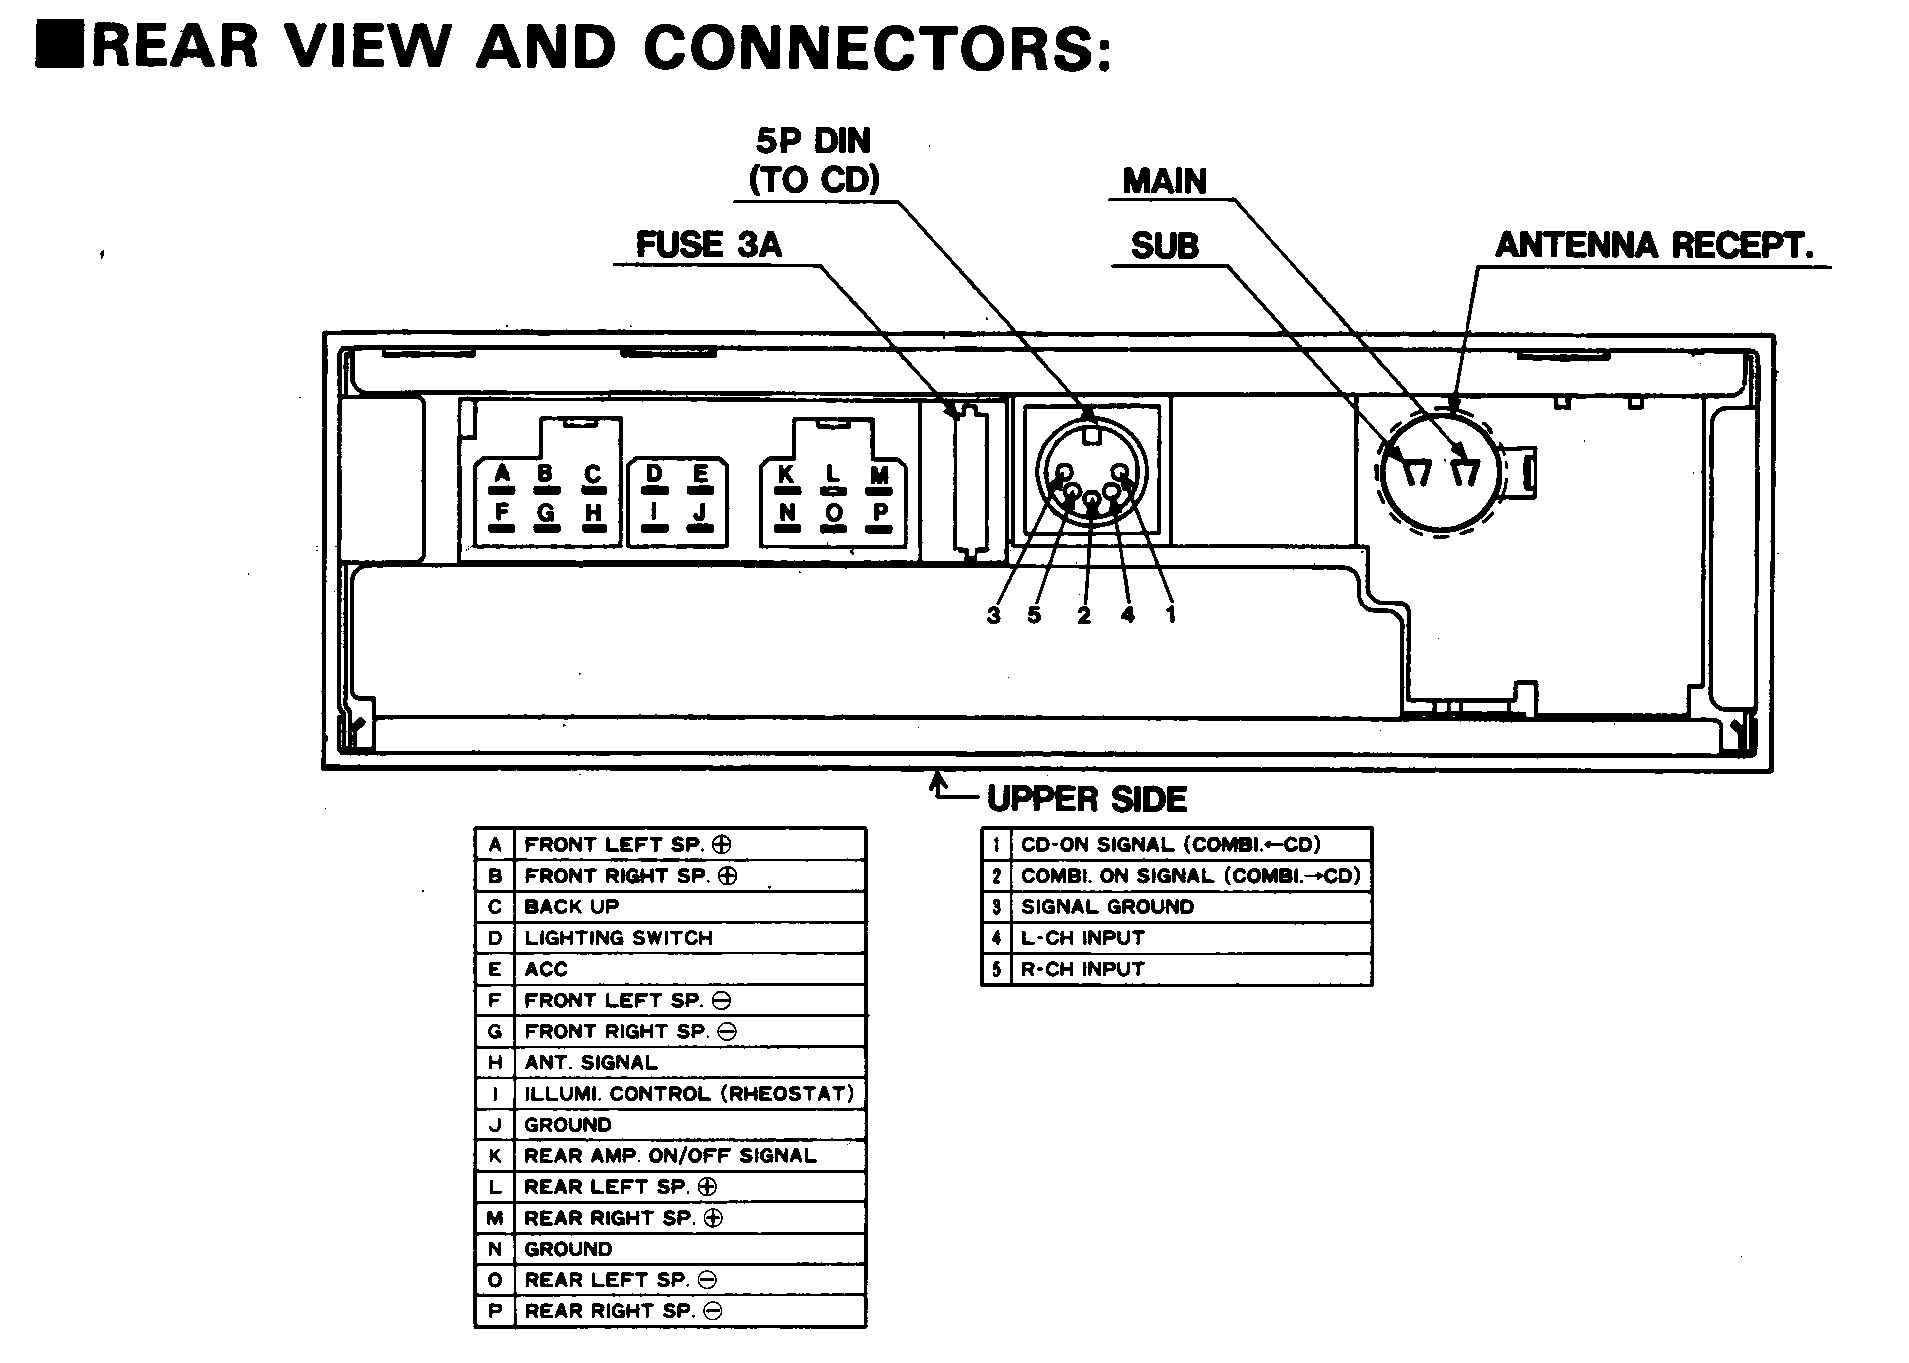 DIAGRAM] 1996 Nissan Sentra Radio Wiring Harness Diagram FULL Version HD  Quality Harness Diagram - PRESENTATIONPDF.CAFESECRET.FRCafesecret